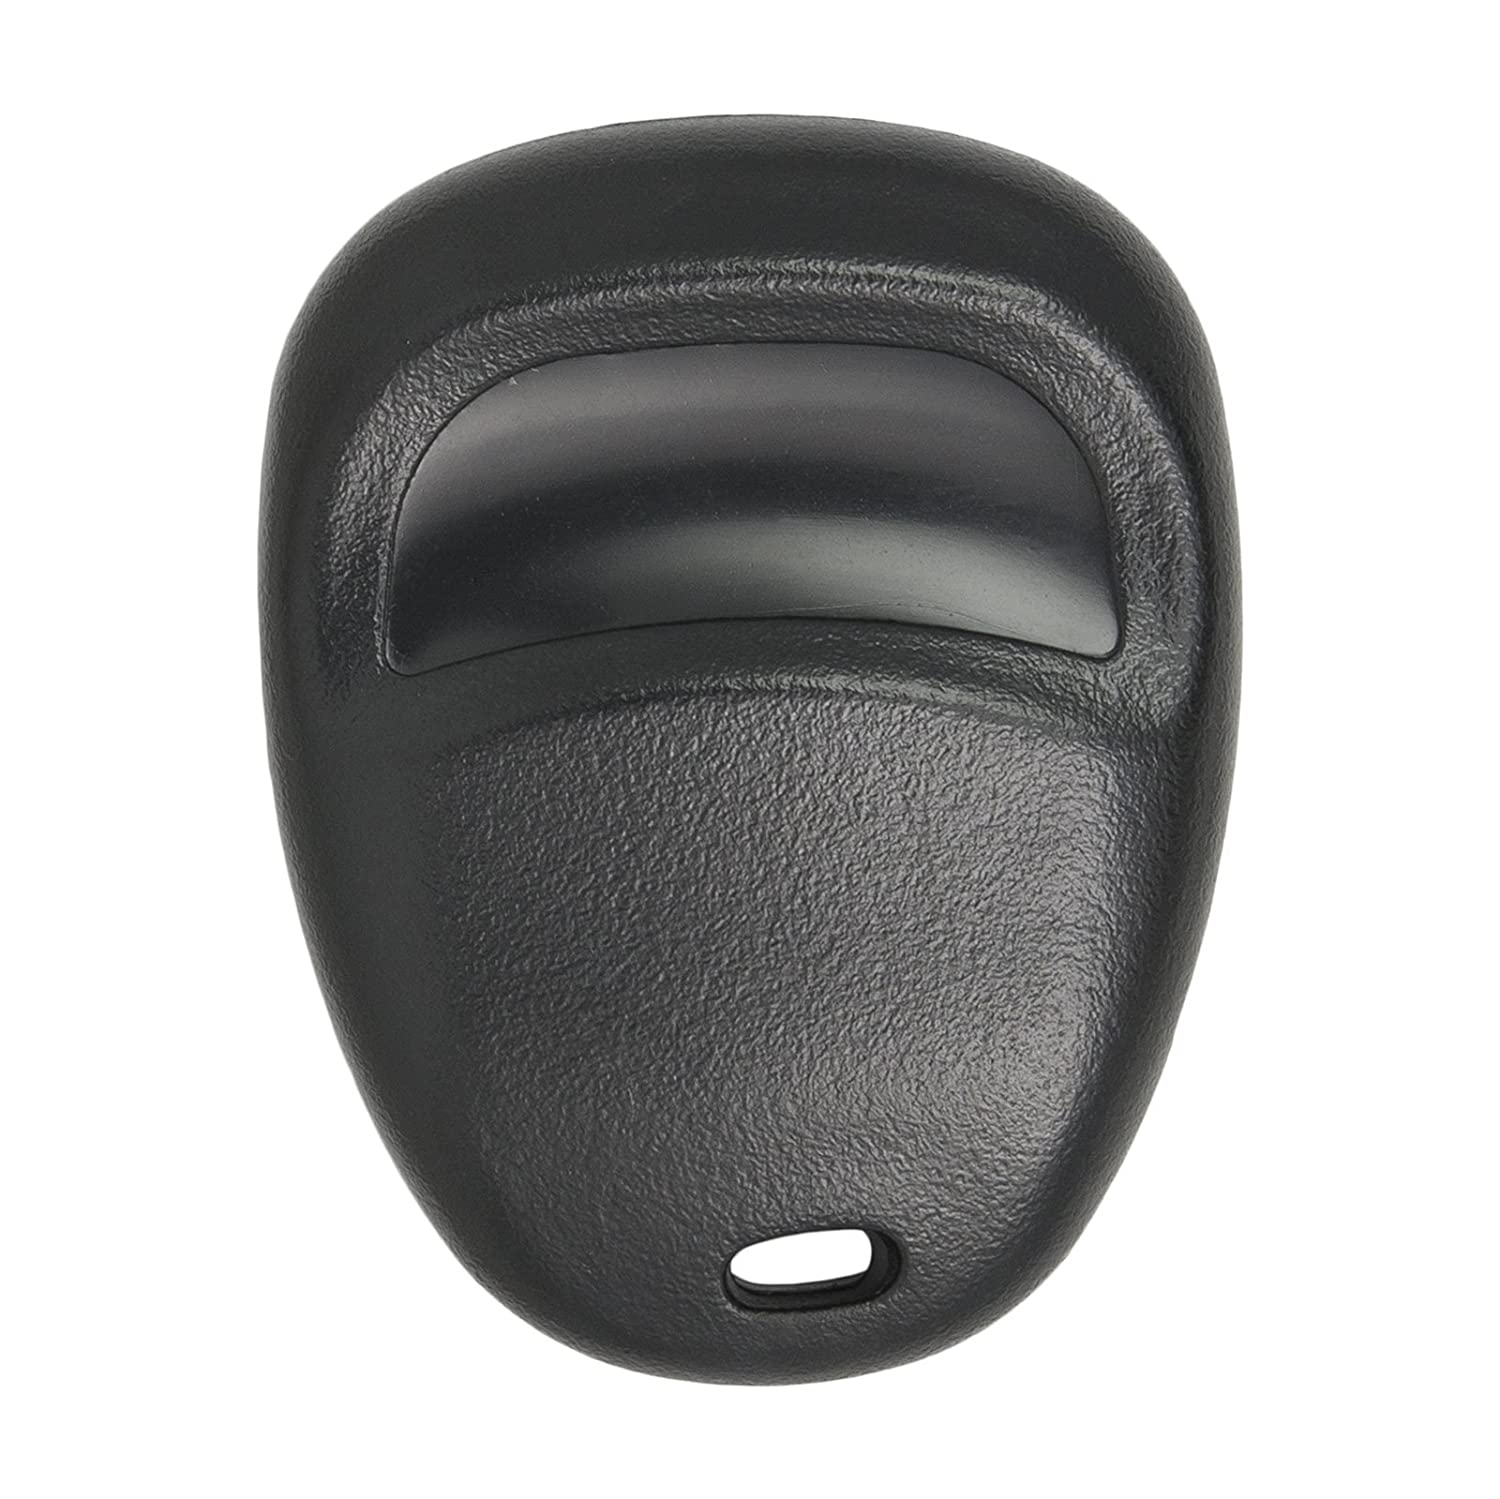 Keyless2Go Keyless Entry Car Key Fob Replacement for Vehicles That Use 3 Button KOBLEAR1XT 15042968 Remote Self-programming R-GM-303.go